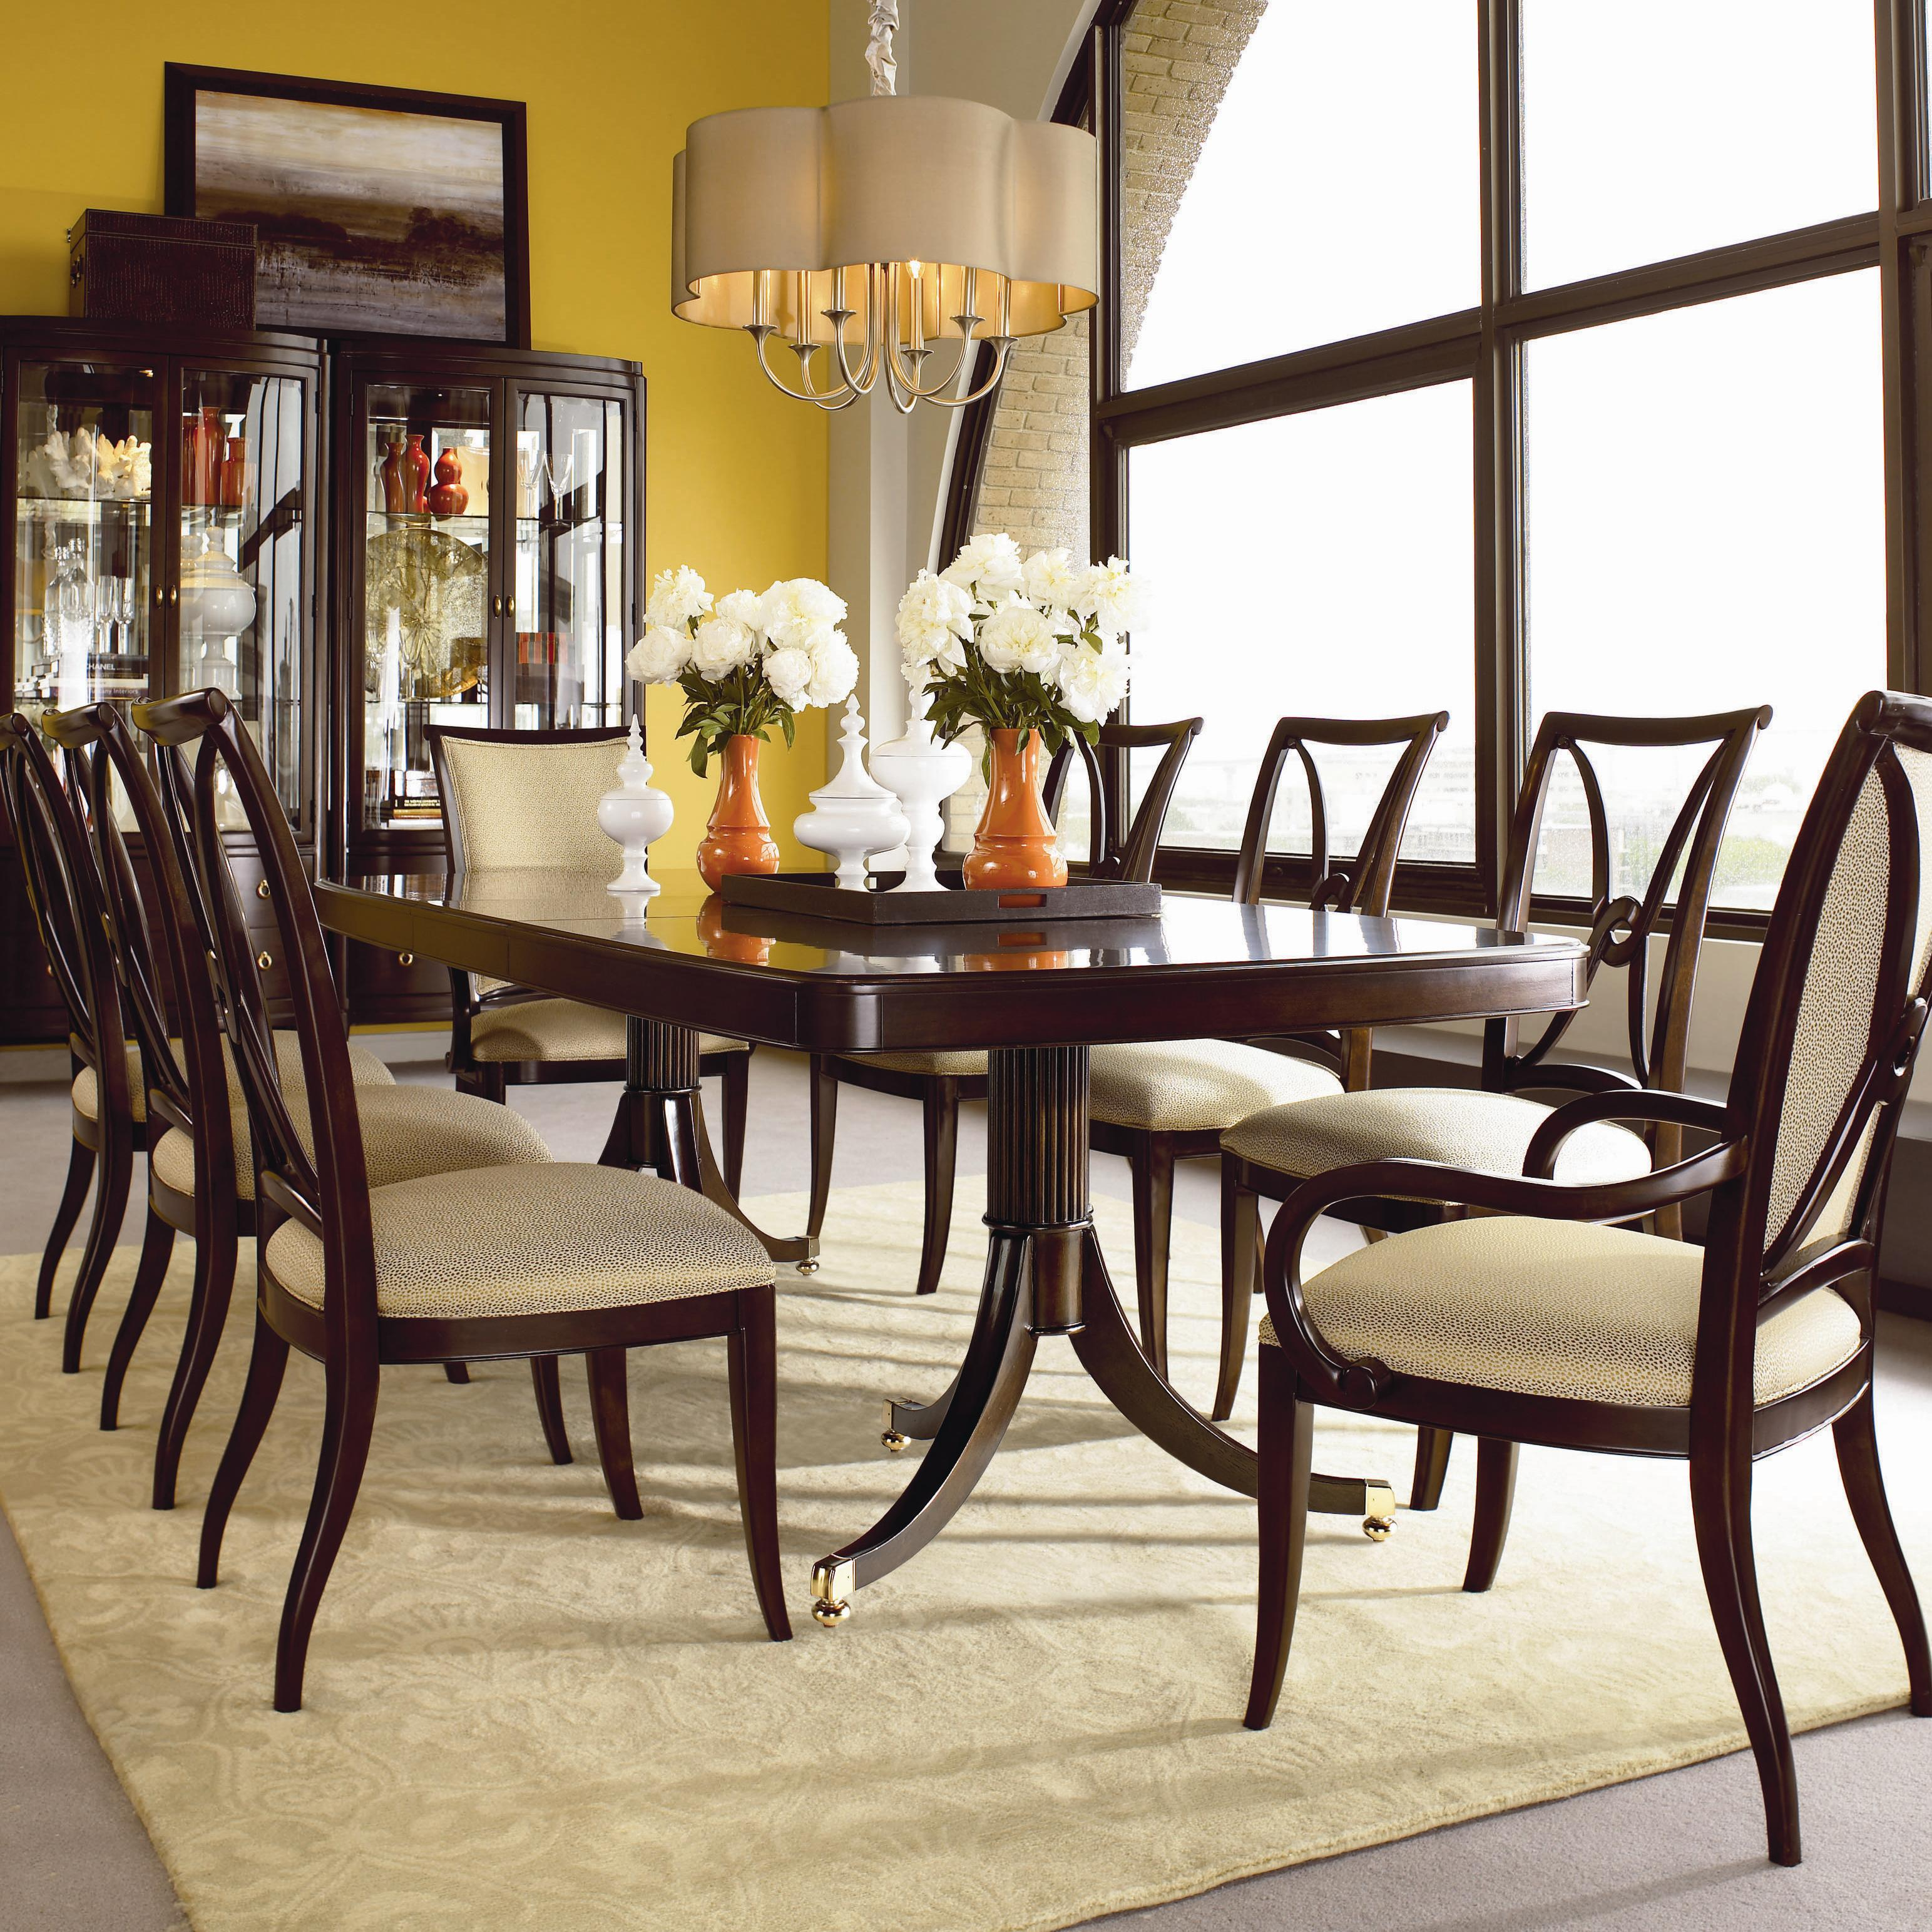 Dining And Living Room Furniture: Thomasville Living Room Sets